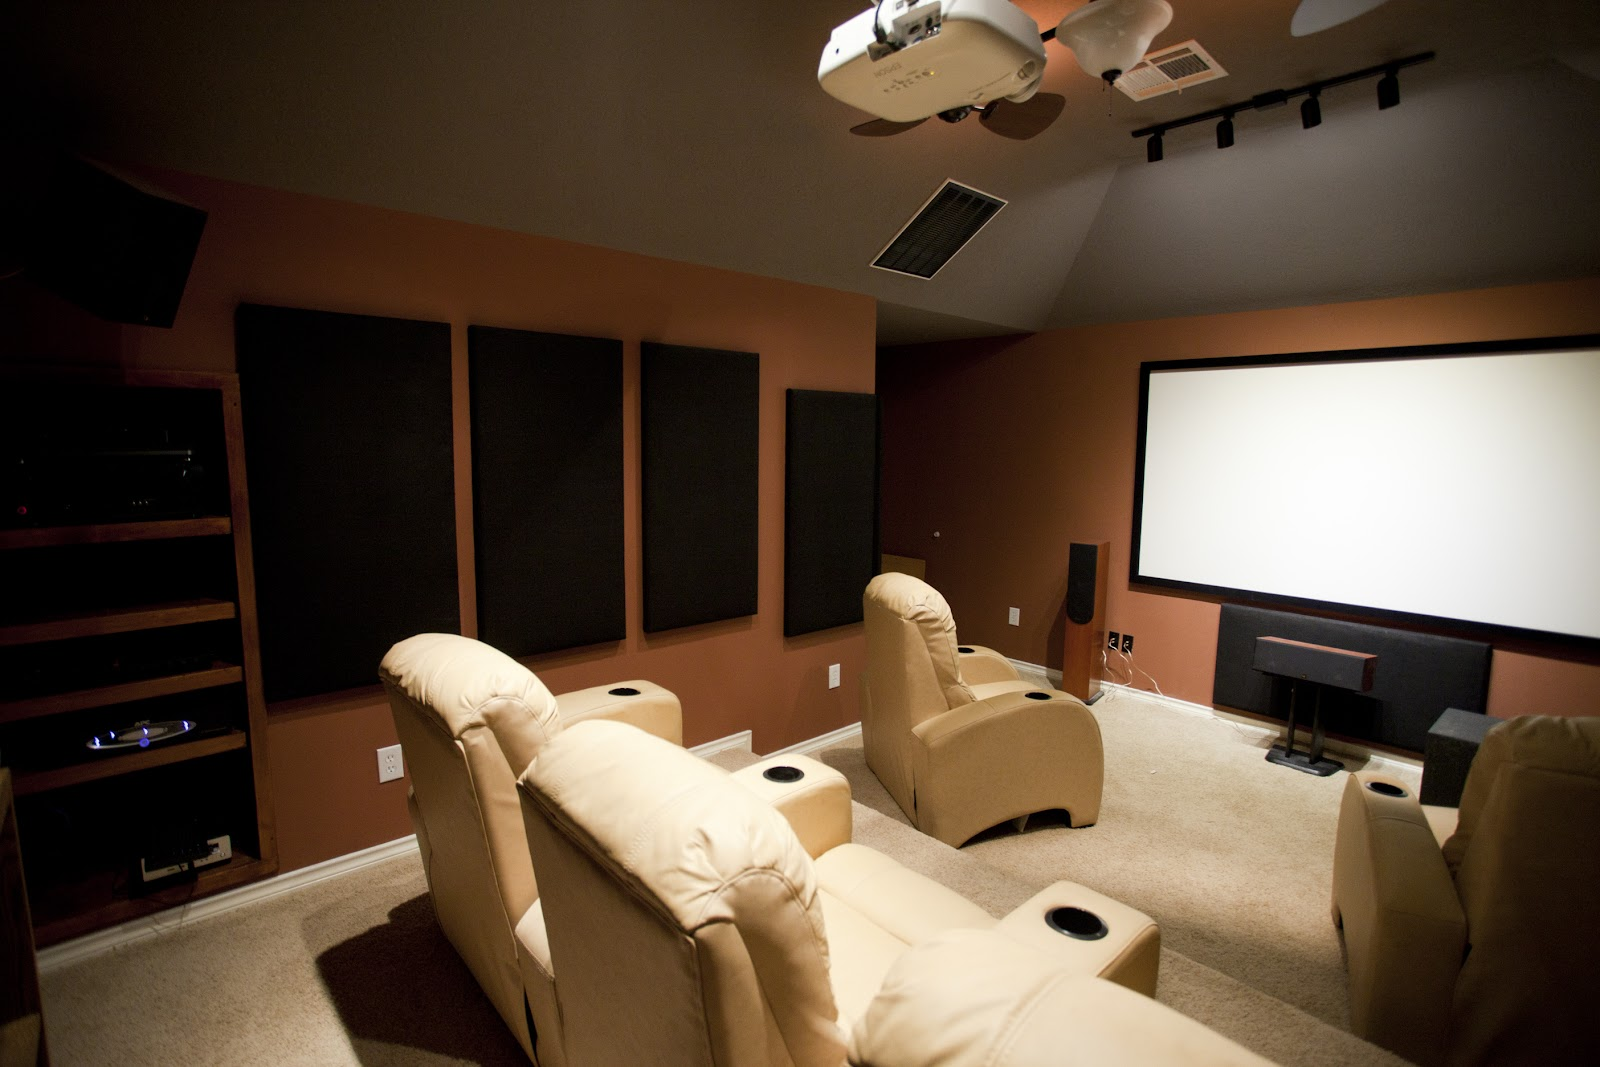 https://upload.wikimedia.org/wikipedia/commons/b/be/Dedicated_home_theater.jpg